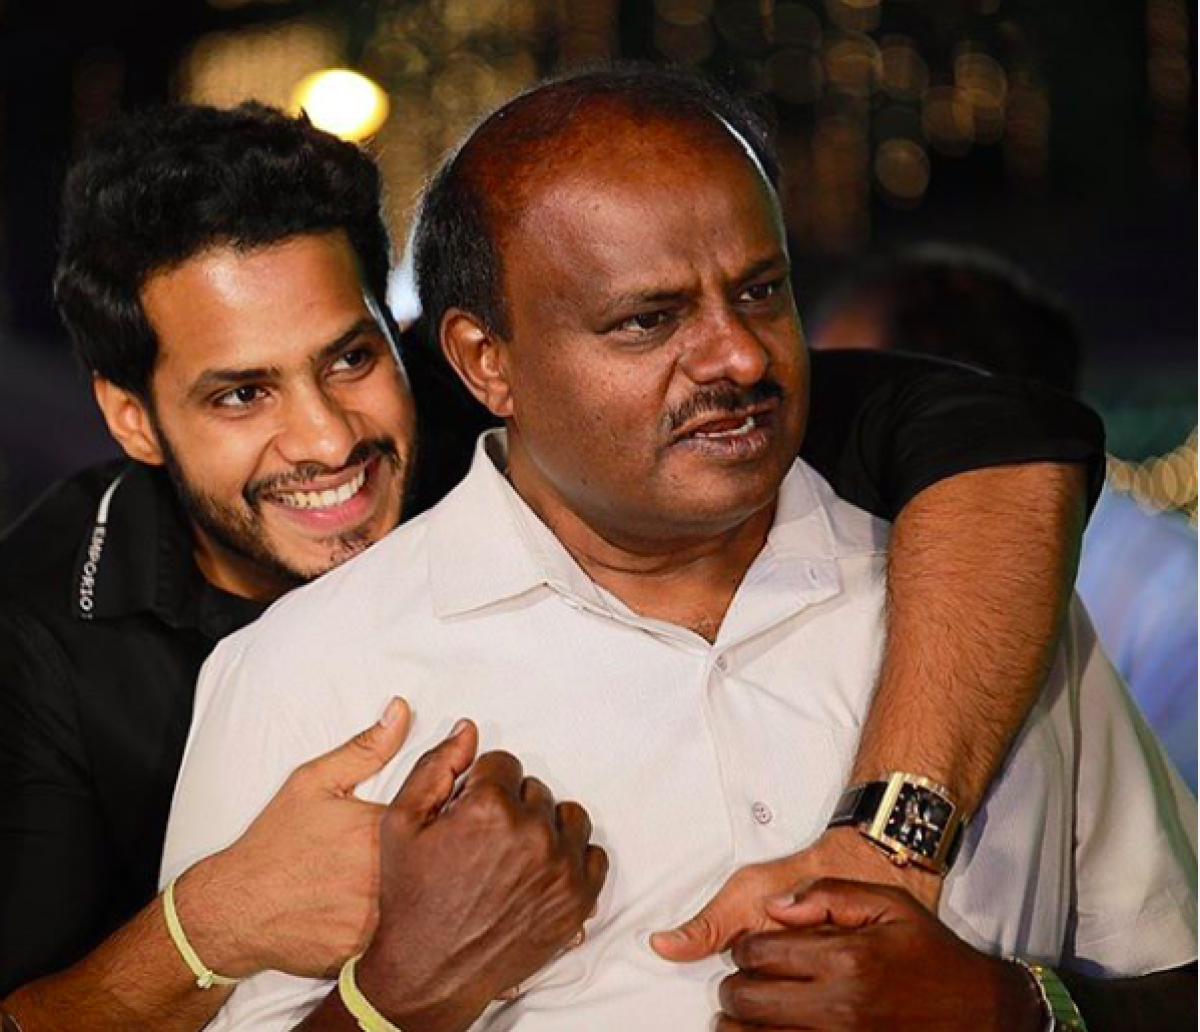 Social distancing rebel, actor, wannabe politician - who is Nikhil Kumaraswamy who had to get married during lockdown?